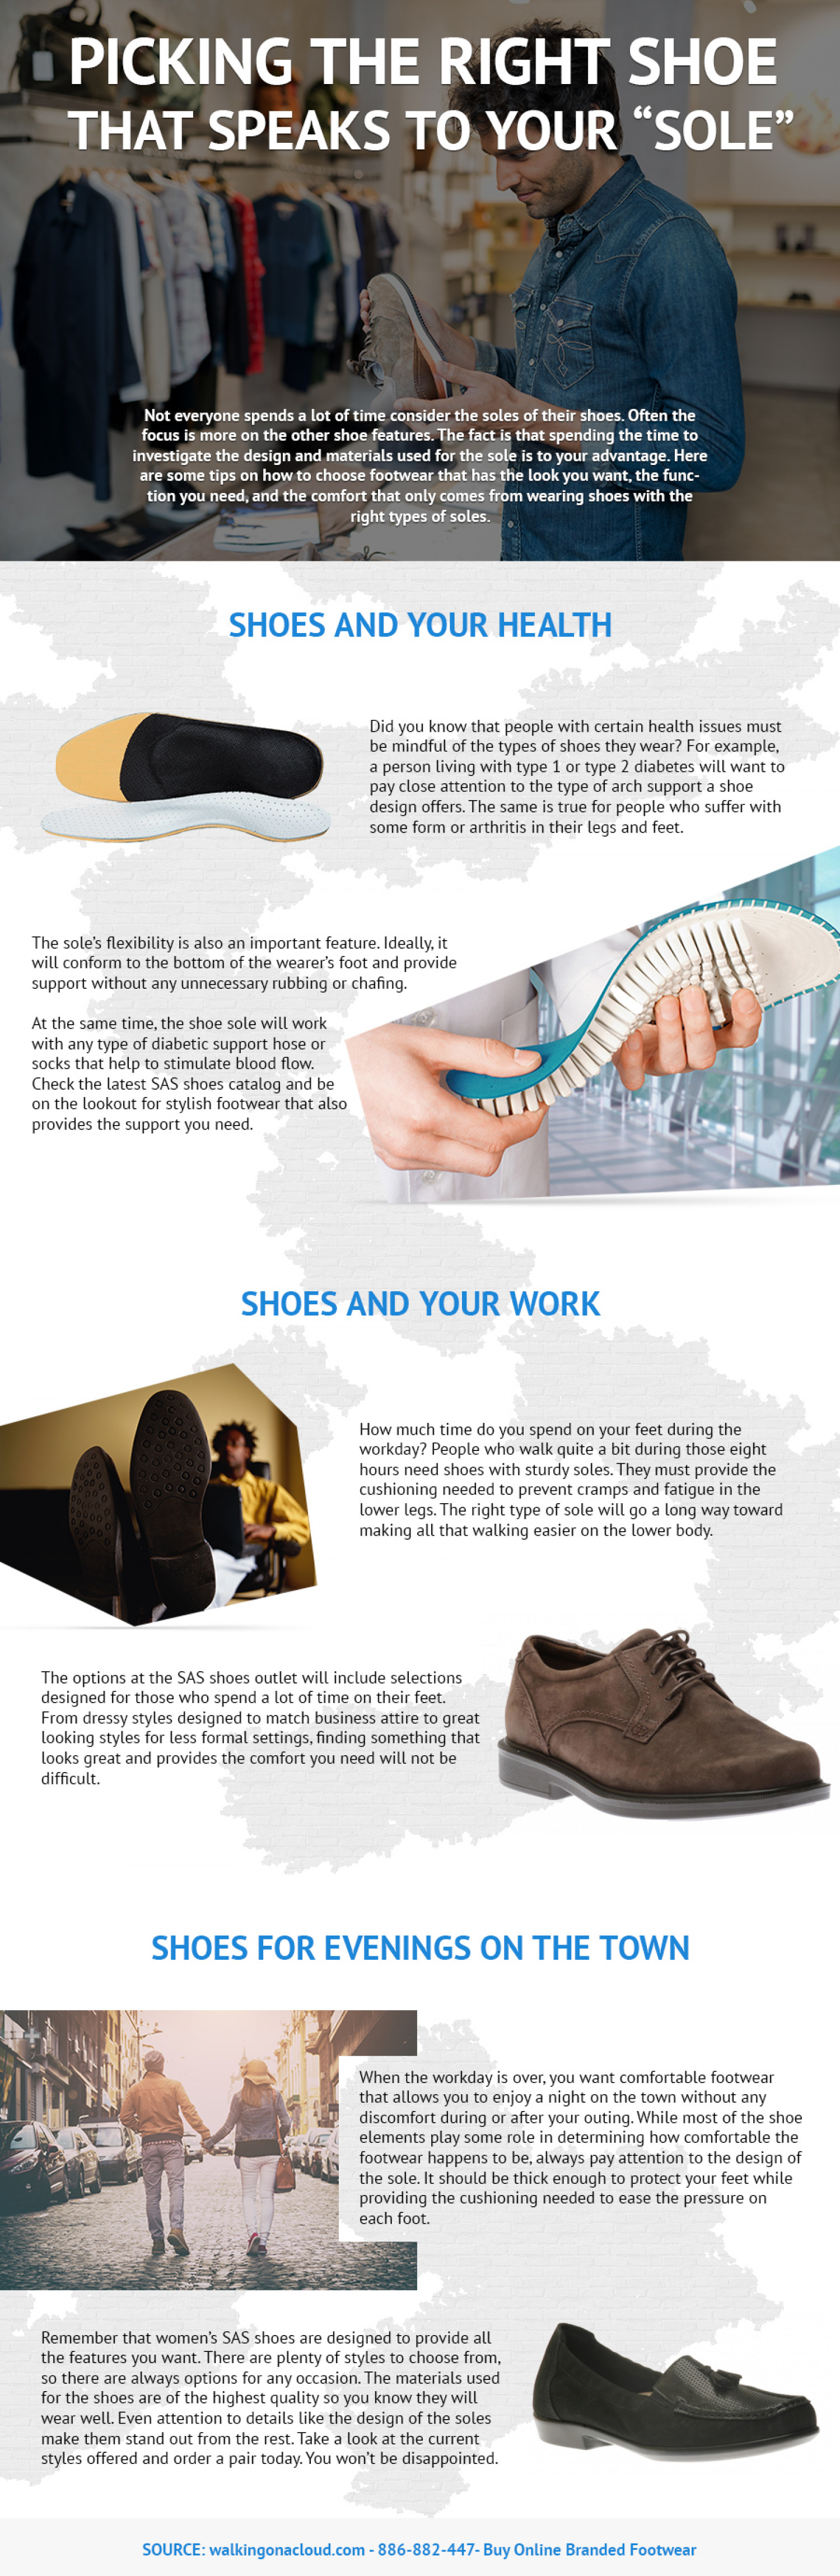 """Picking the Right Shoe That Speaks to Your """"Sole"""" Infographic"""